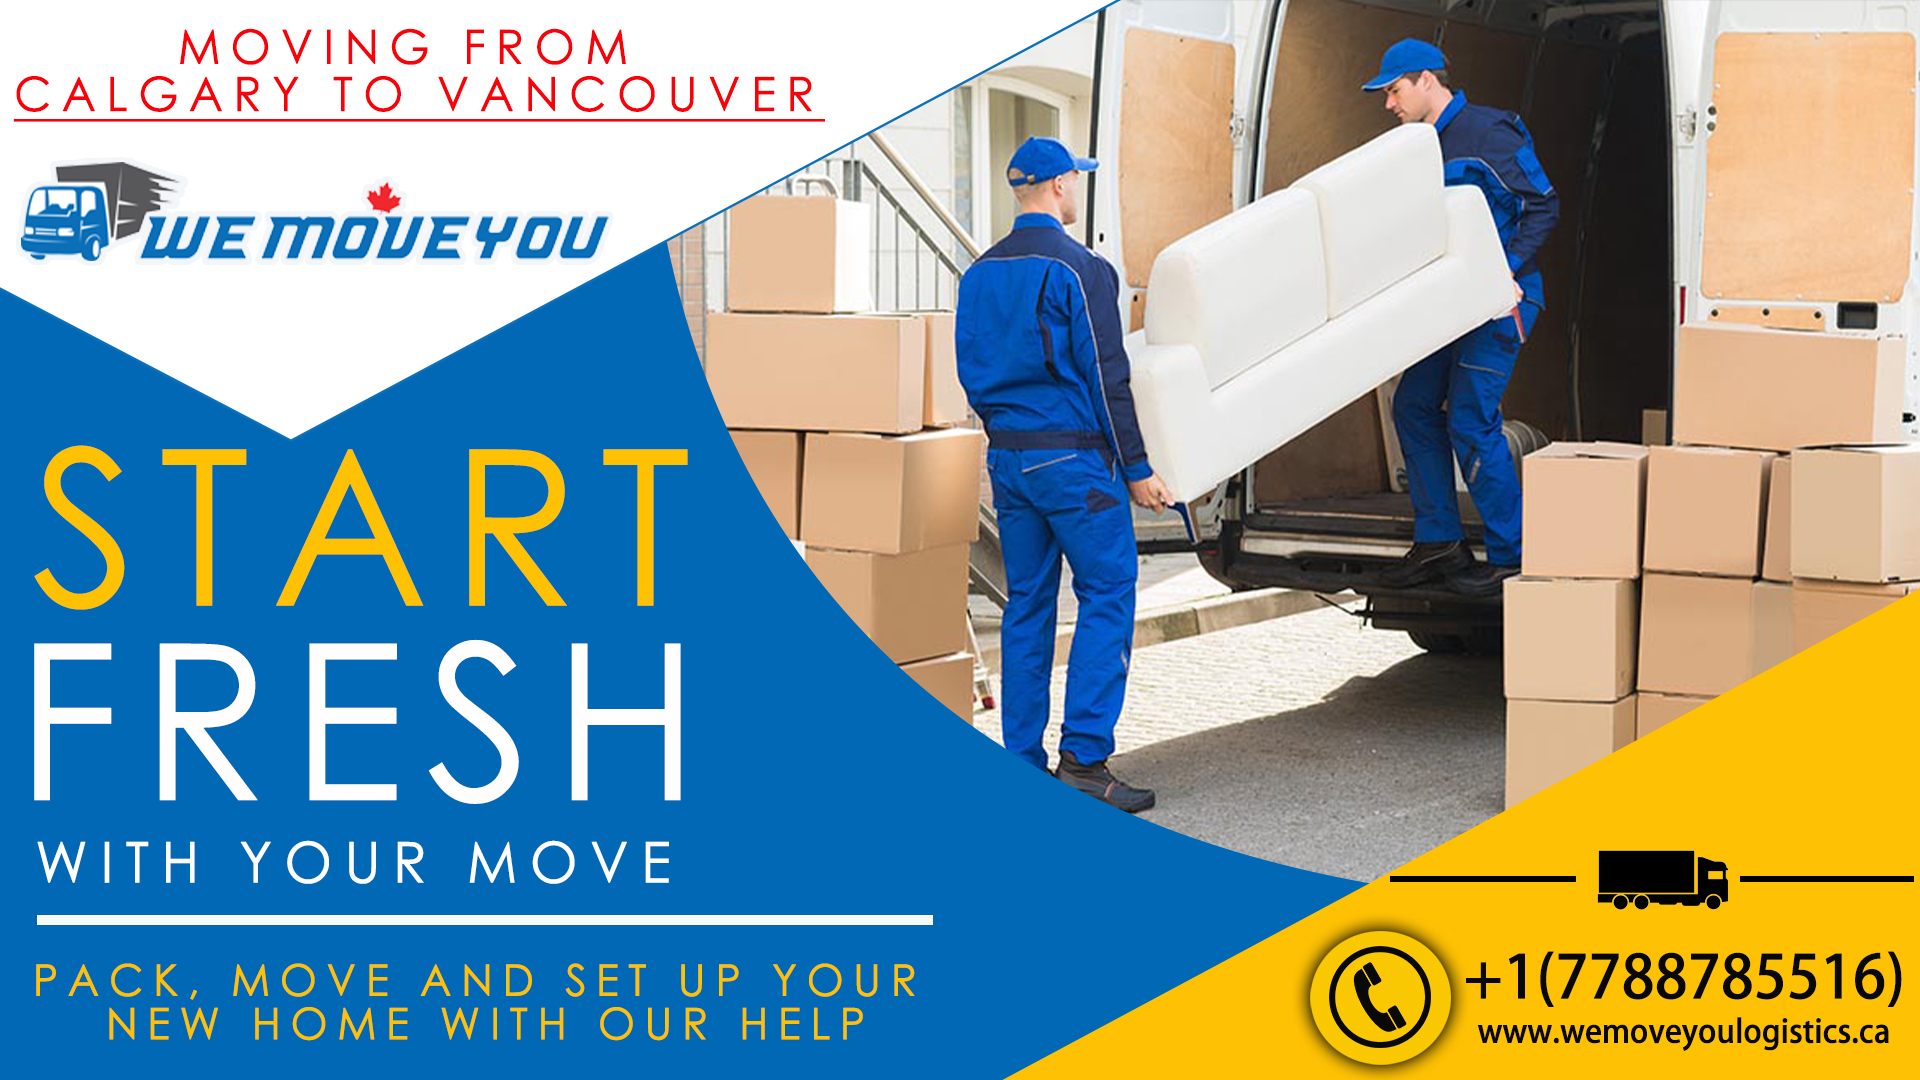 Moving from Calgary to Vancouver